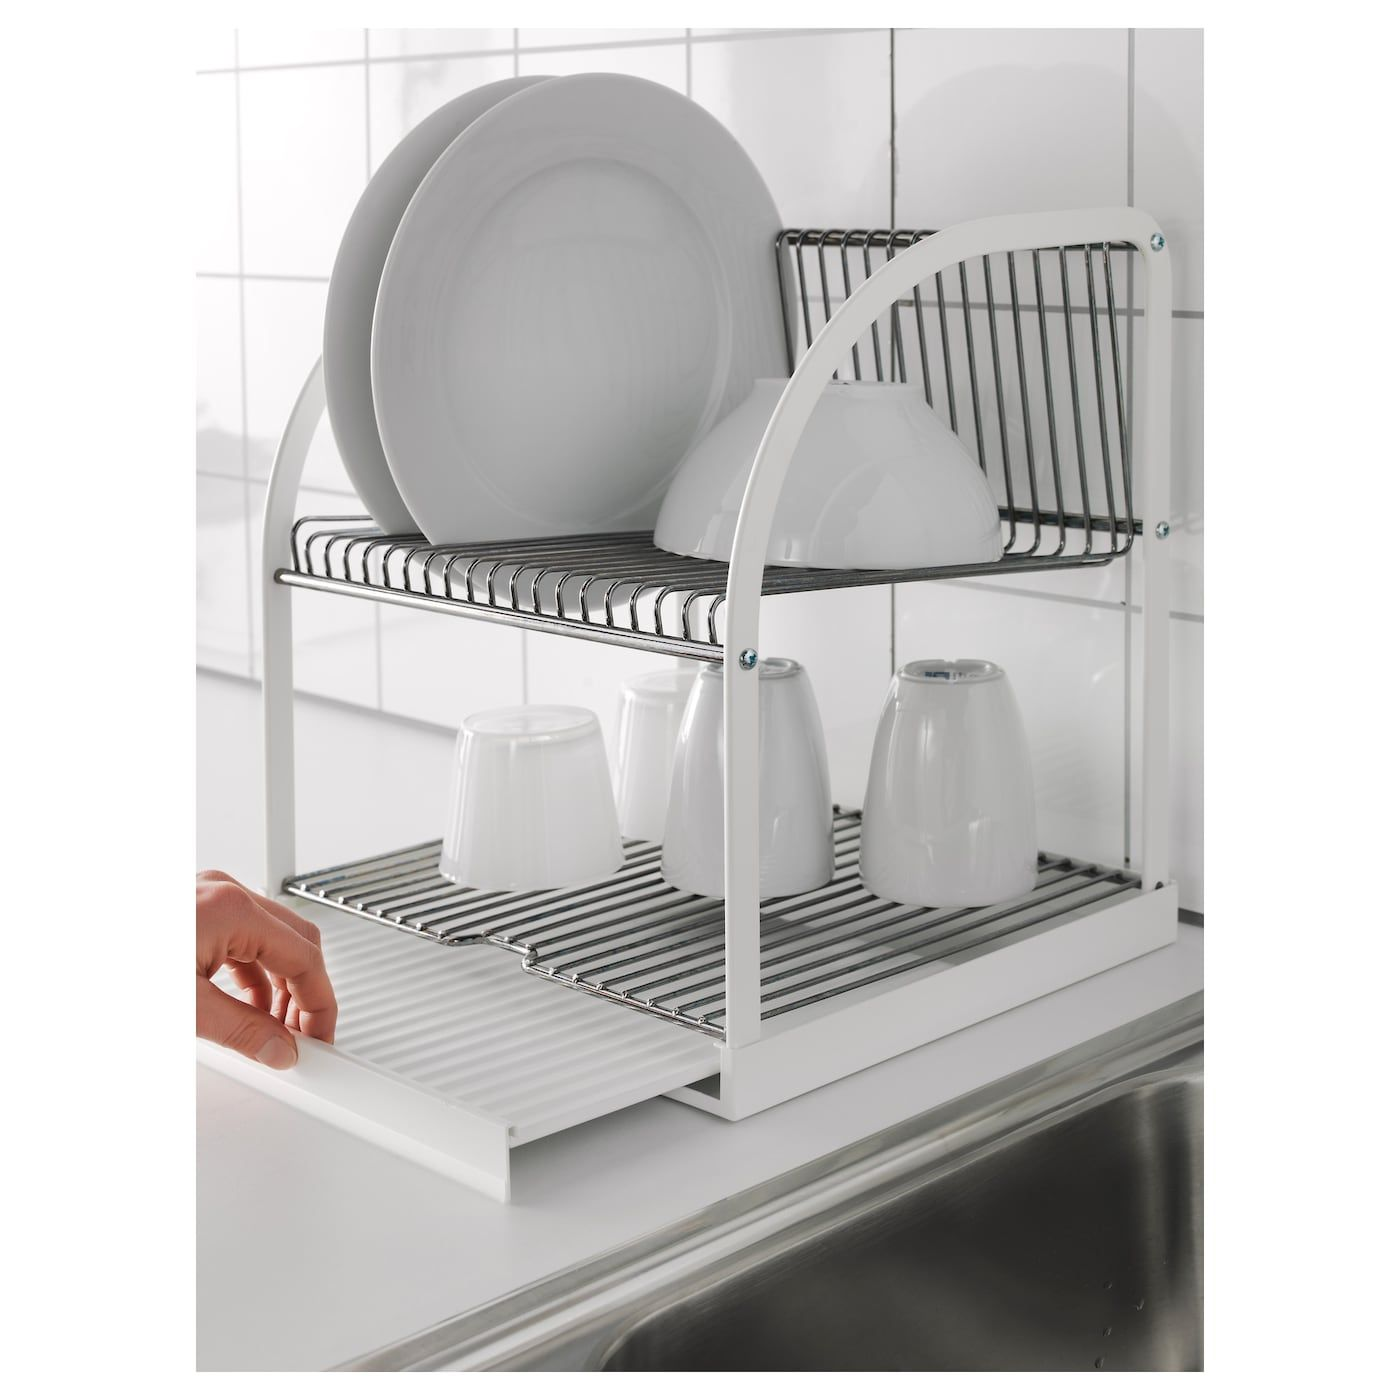 Bestaende Dish Drainer Silver Color White Ikea Dish Drainers Dish Rack Drying Kitchen Utensils Design